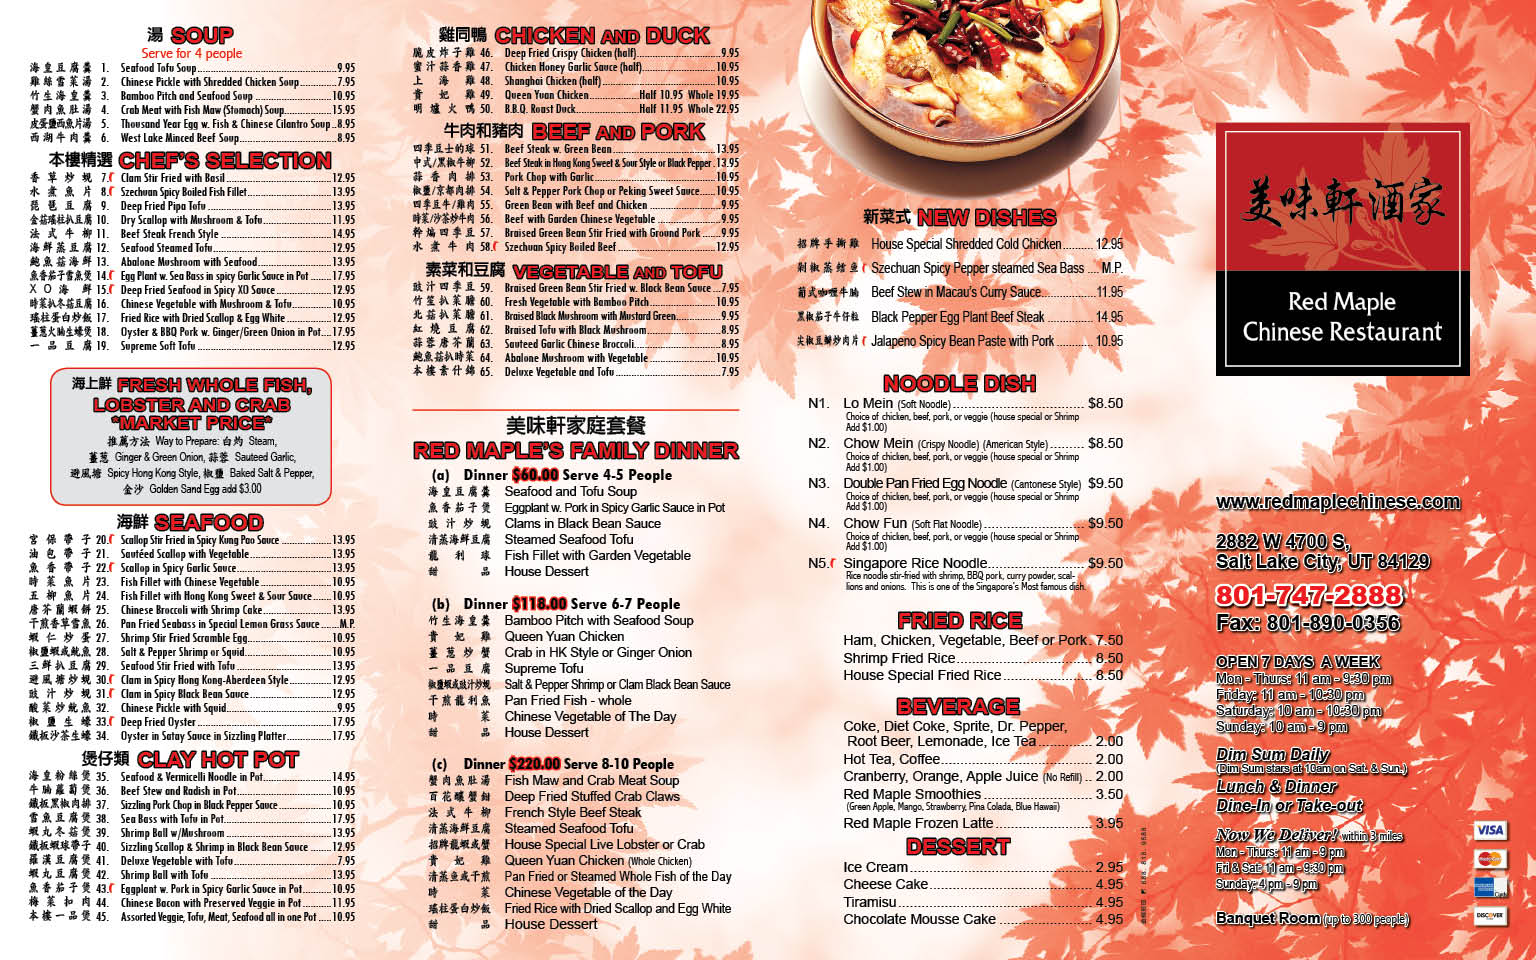 red maple chinese cuisine-salt lake city-ut-84119-3203 - menu